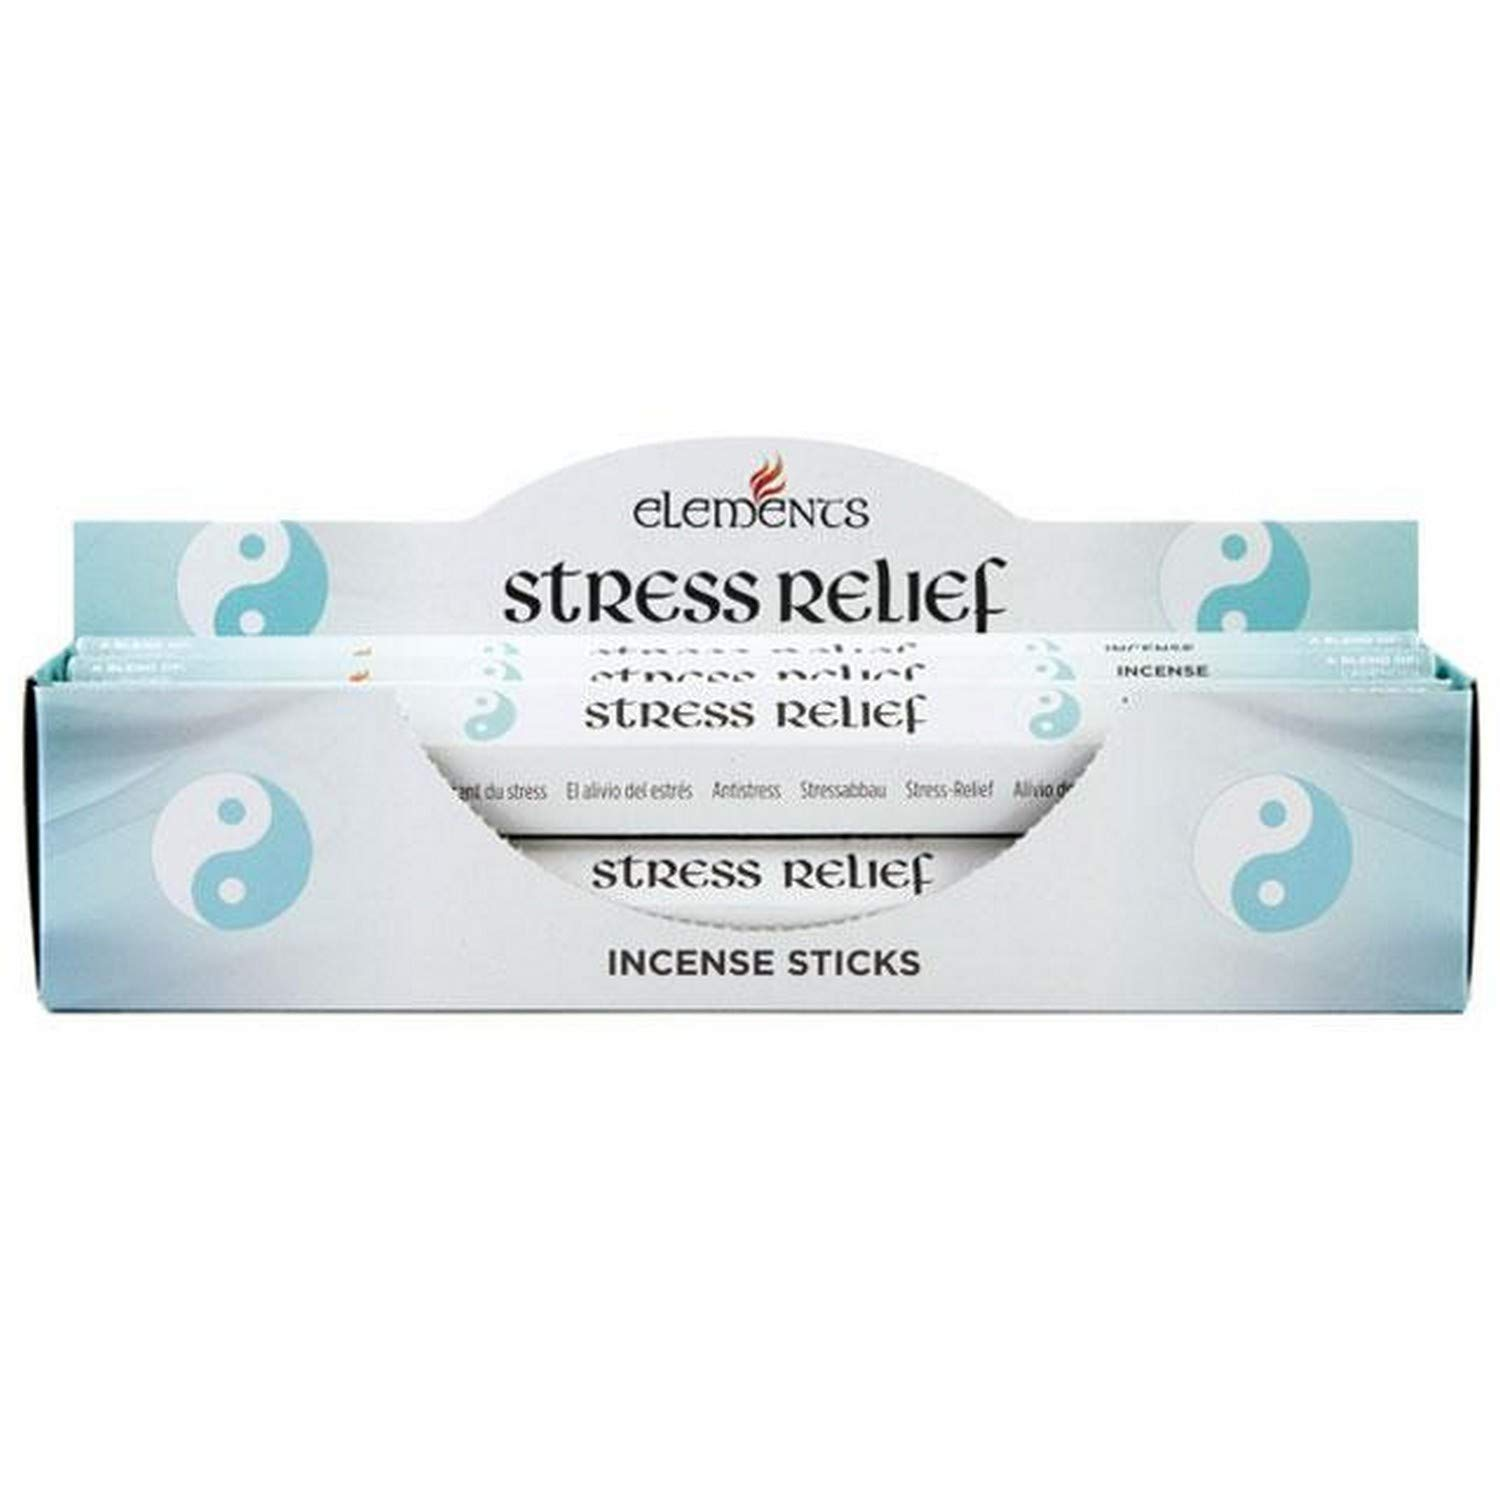 Something Different Elements Stress Relief Incense Stick (Pack Of 6) (One Size) (Multicolour) UTSD2059_1